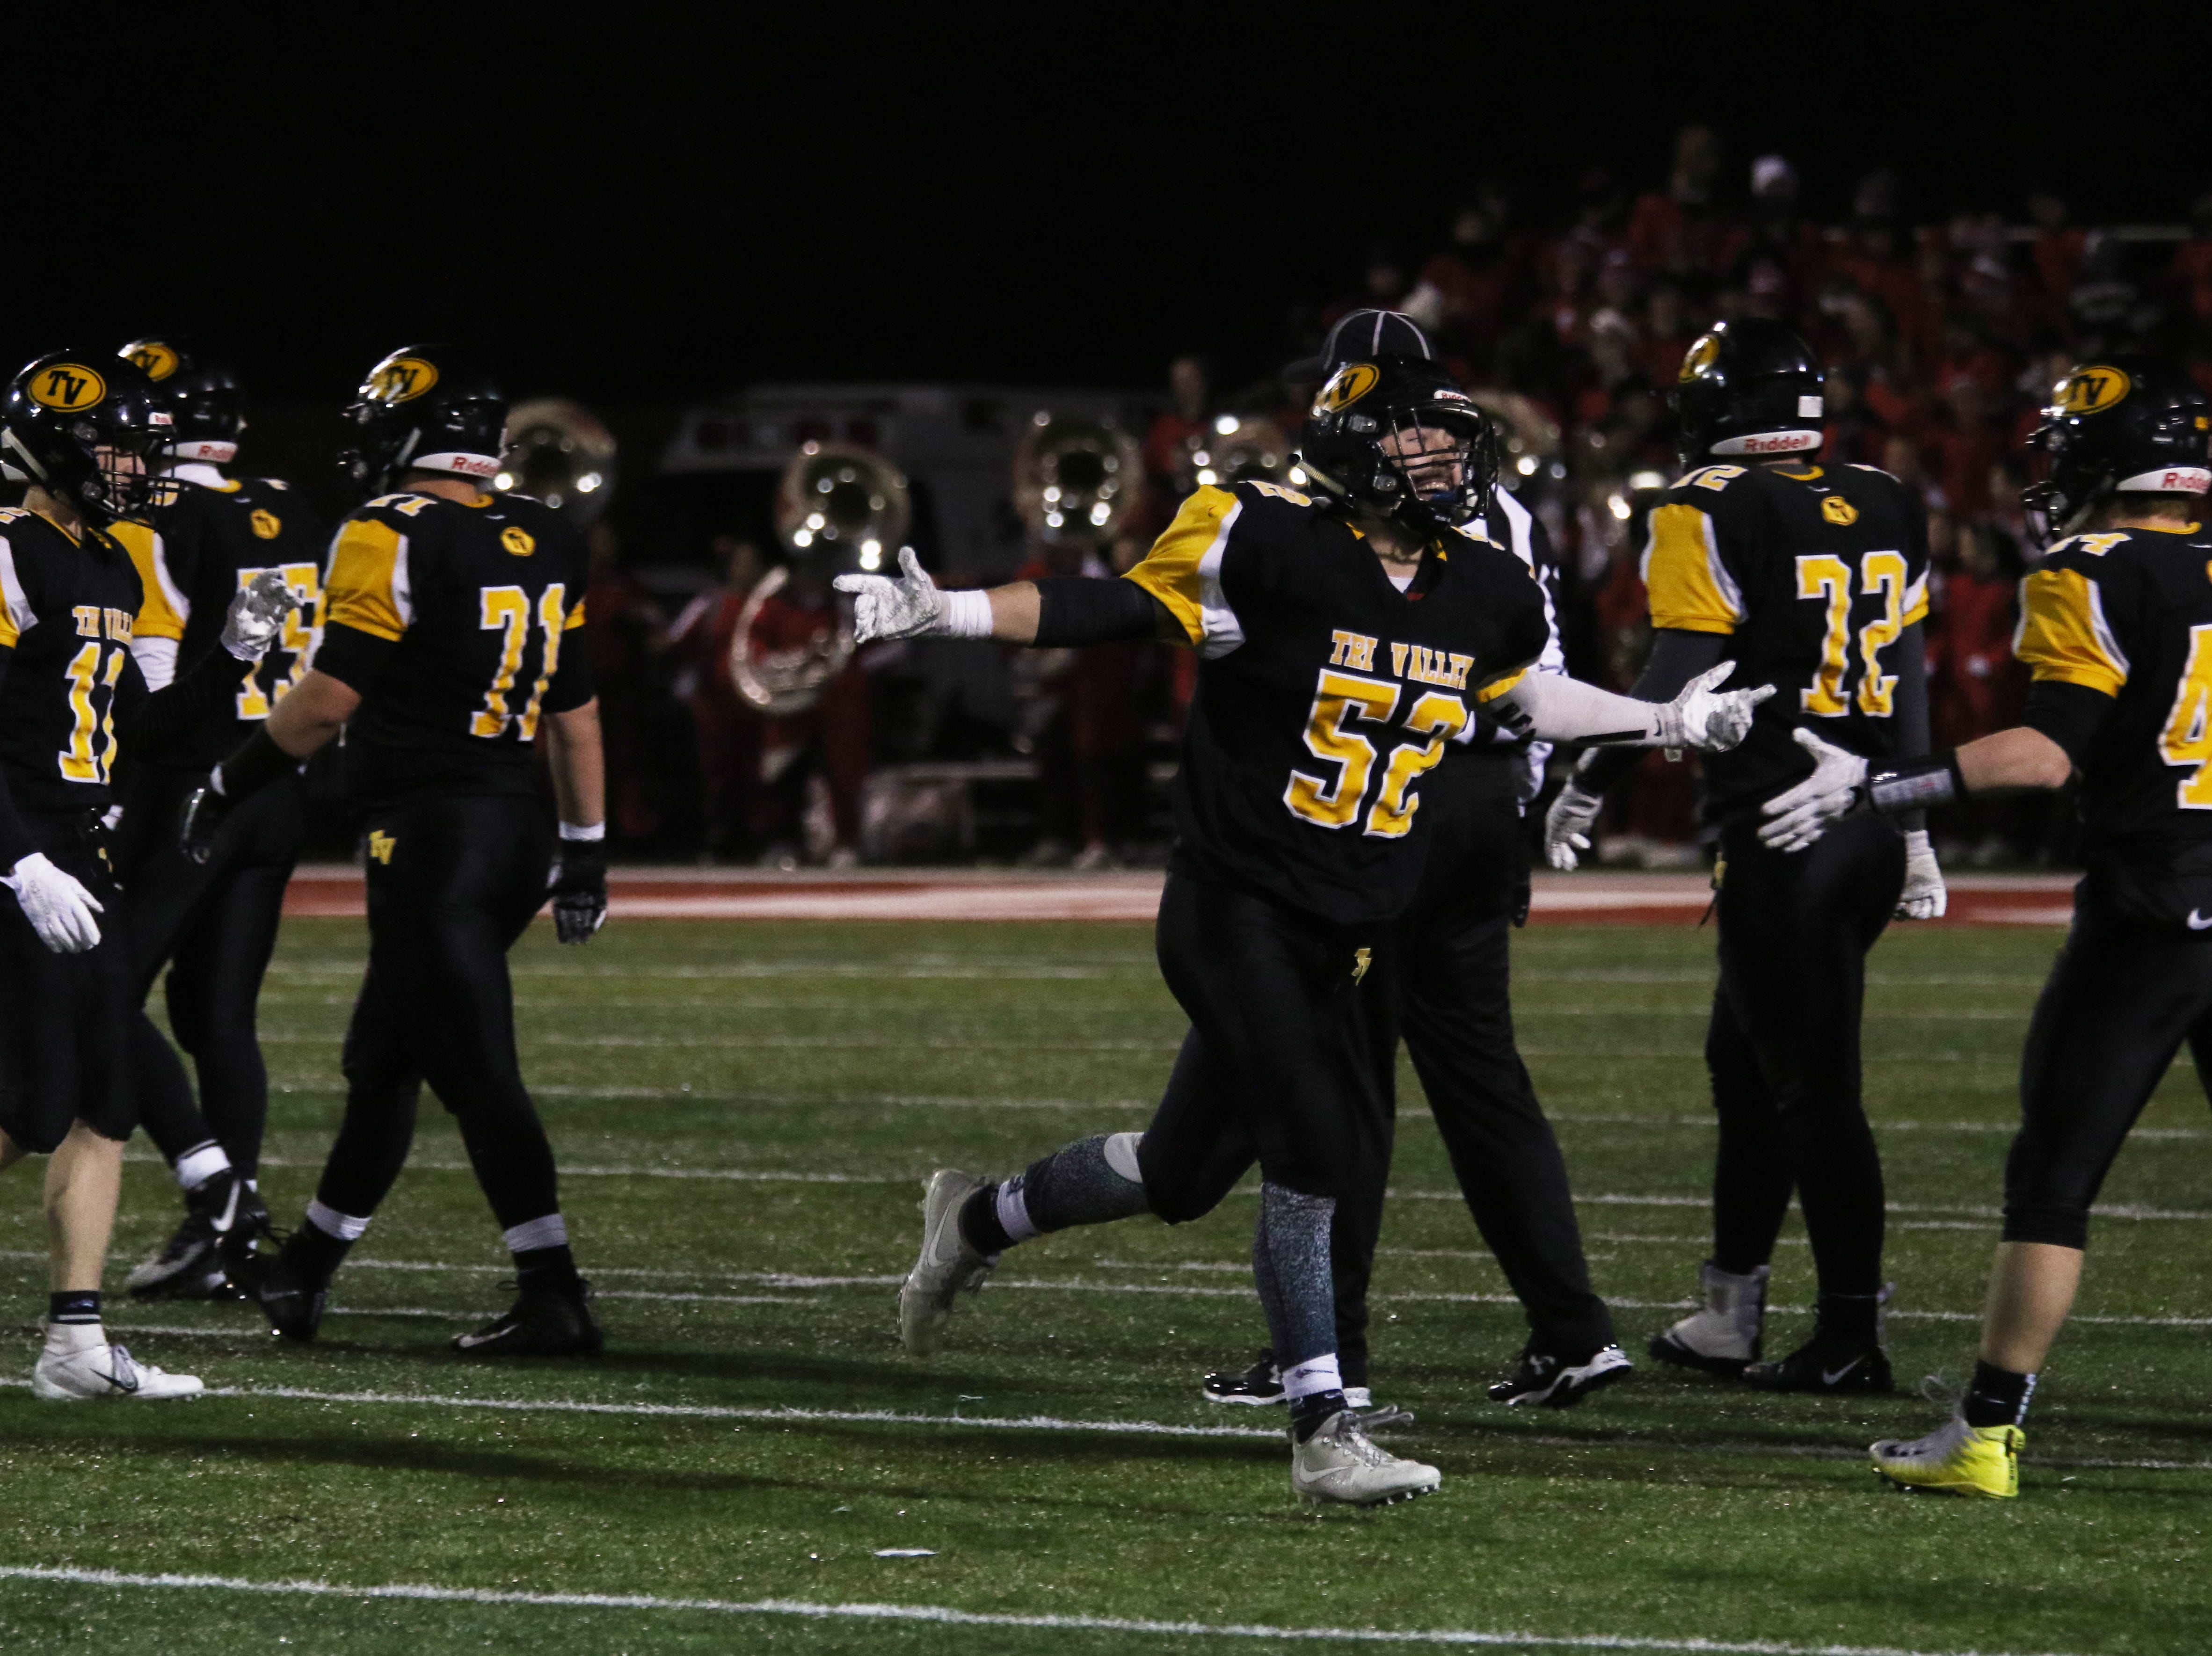 Tri-Valley's Tom Reiss celebrates a play against Wadsworth.